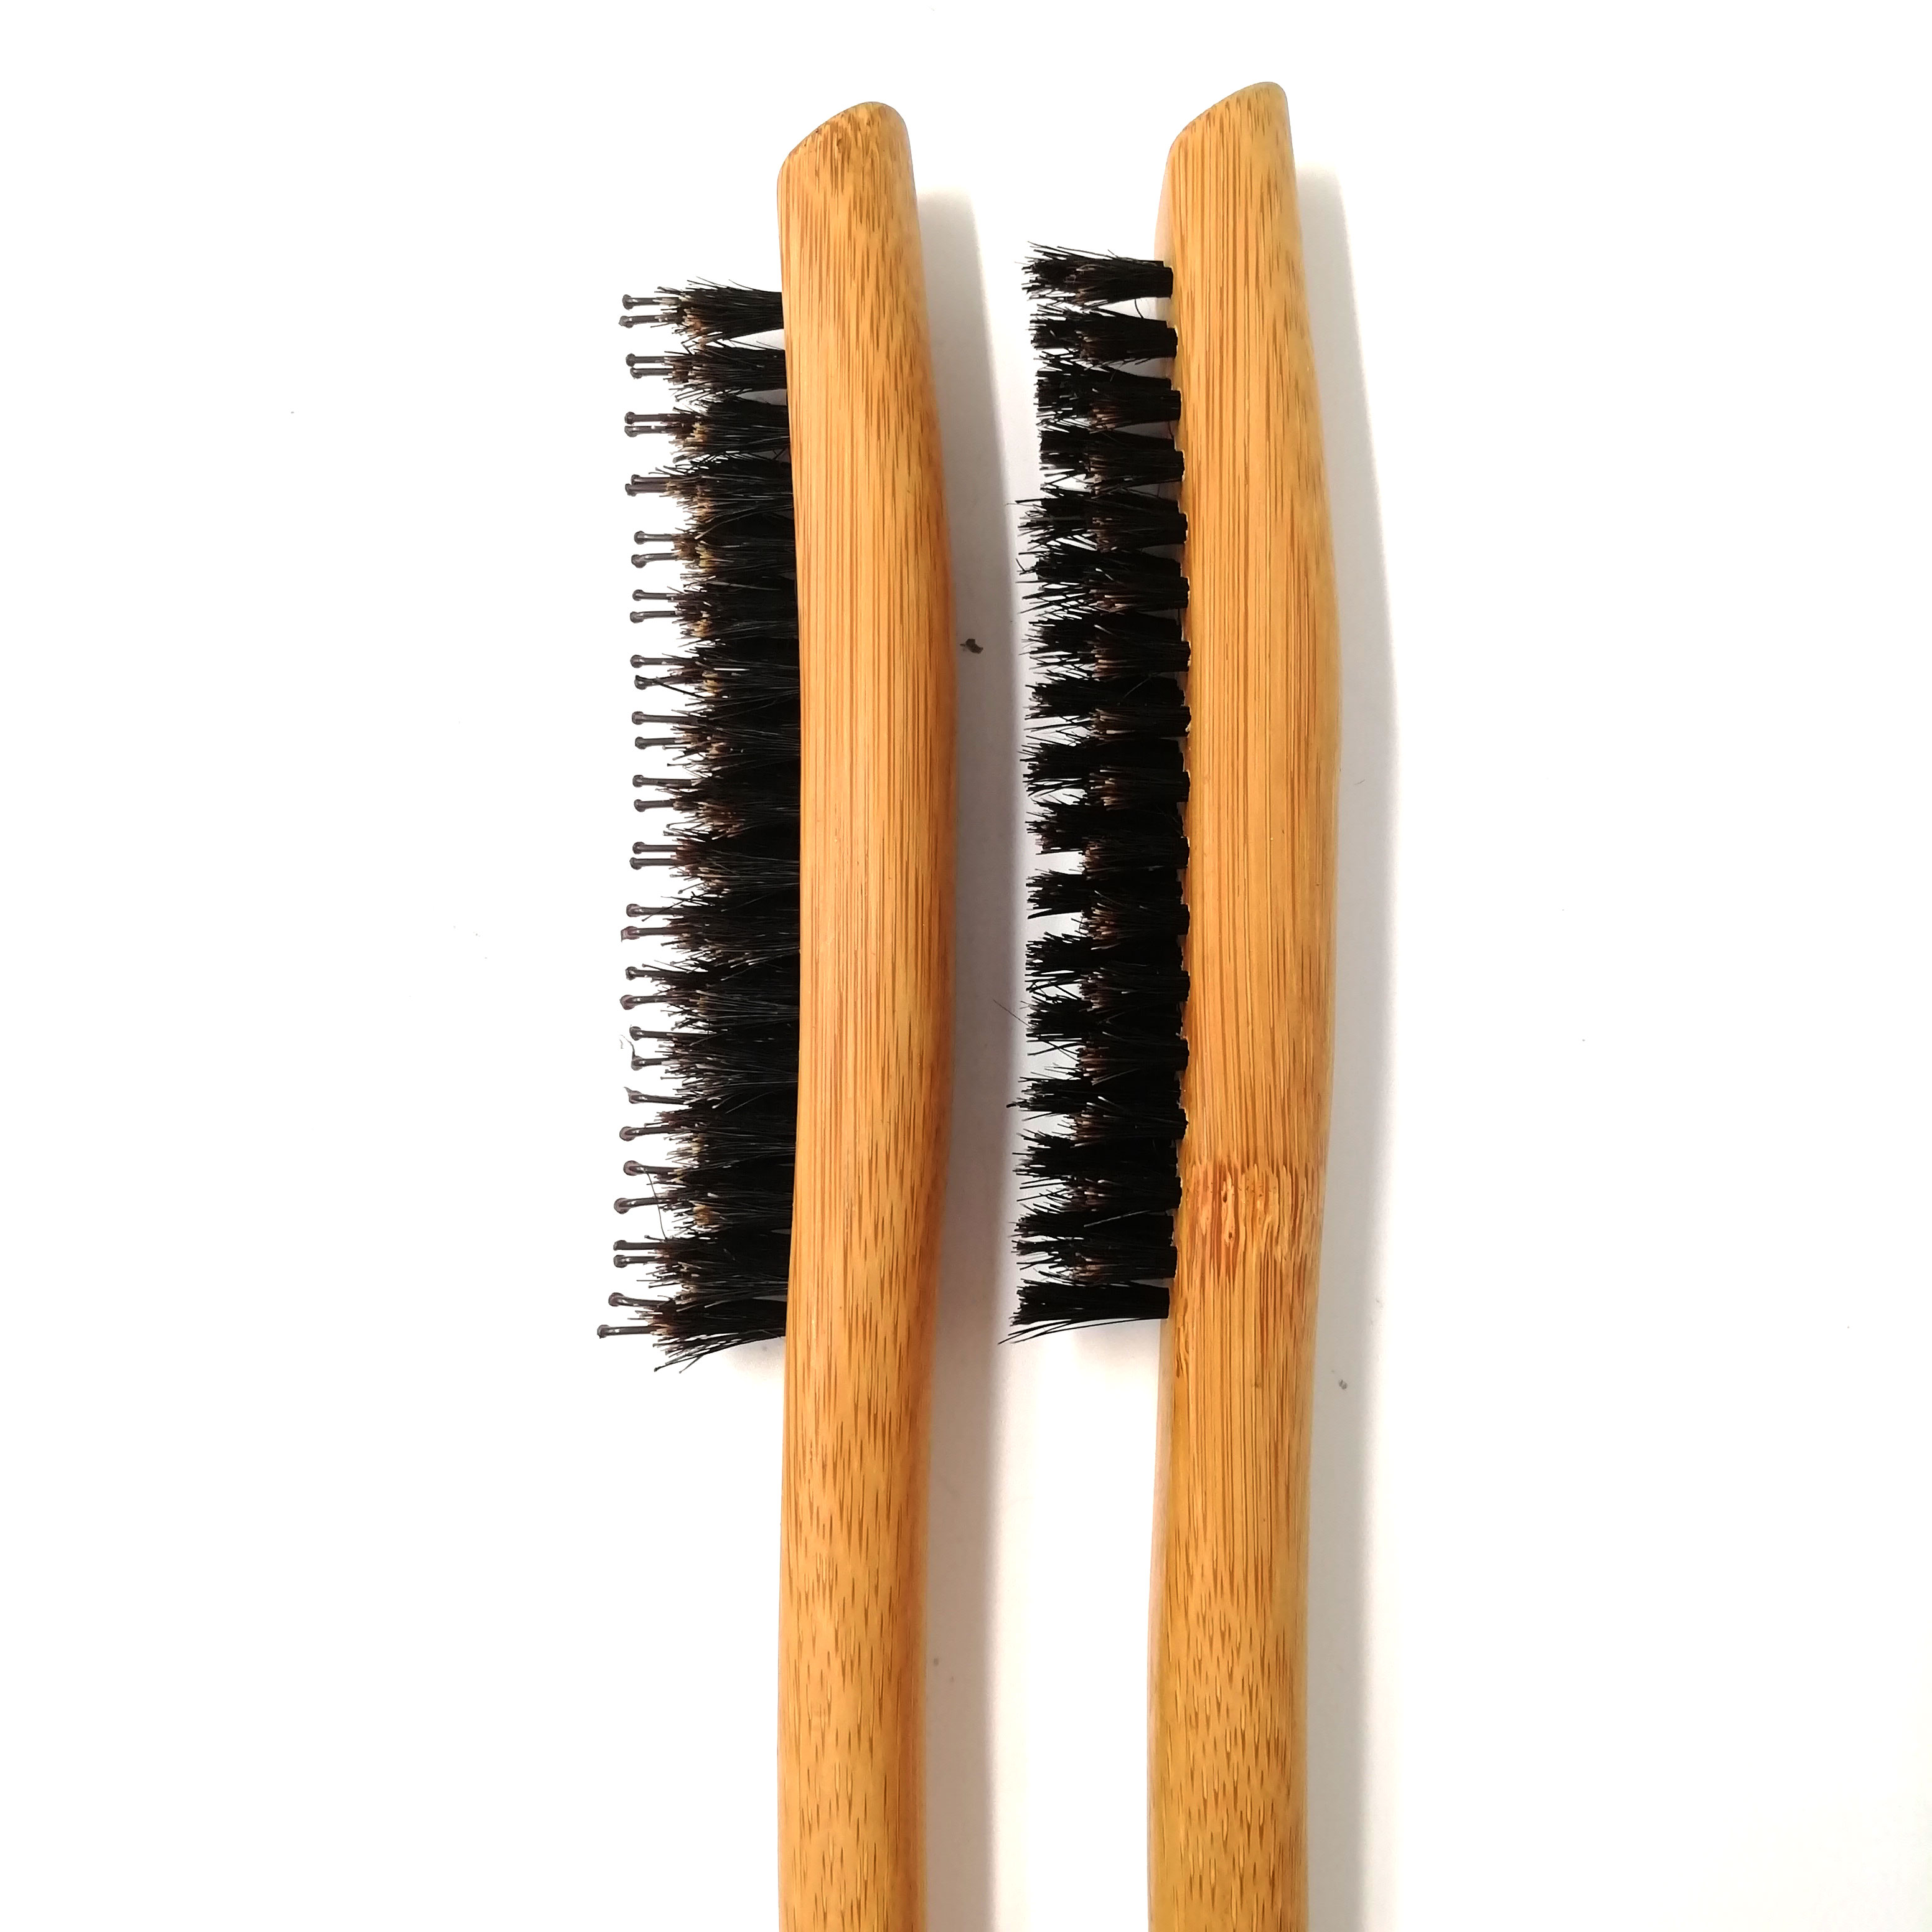 Manufacturers New Design  100% Natural Boar Bristles Wooden Hair teasing slim styling brush